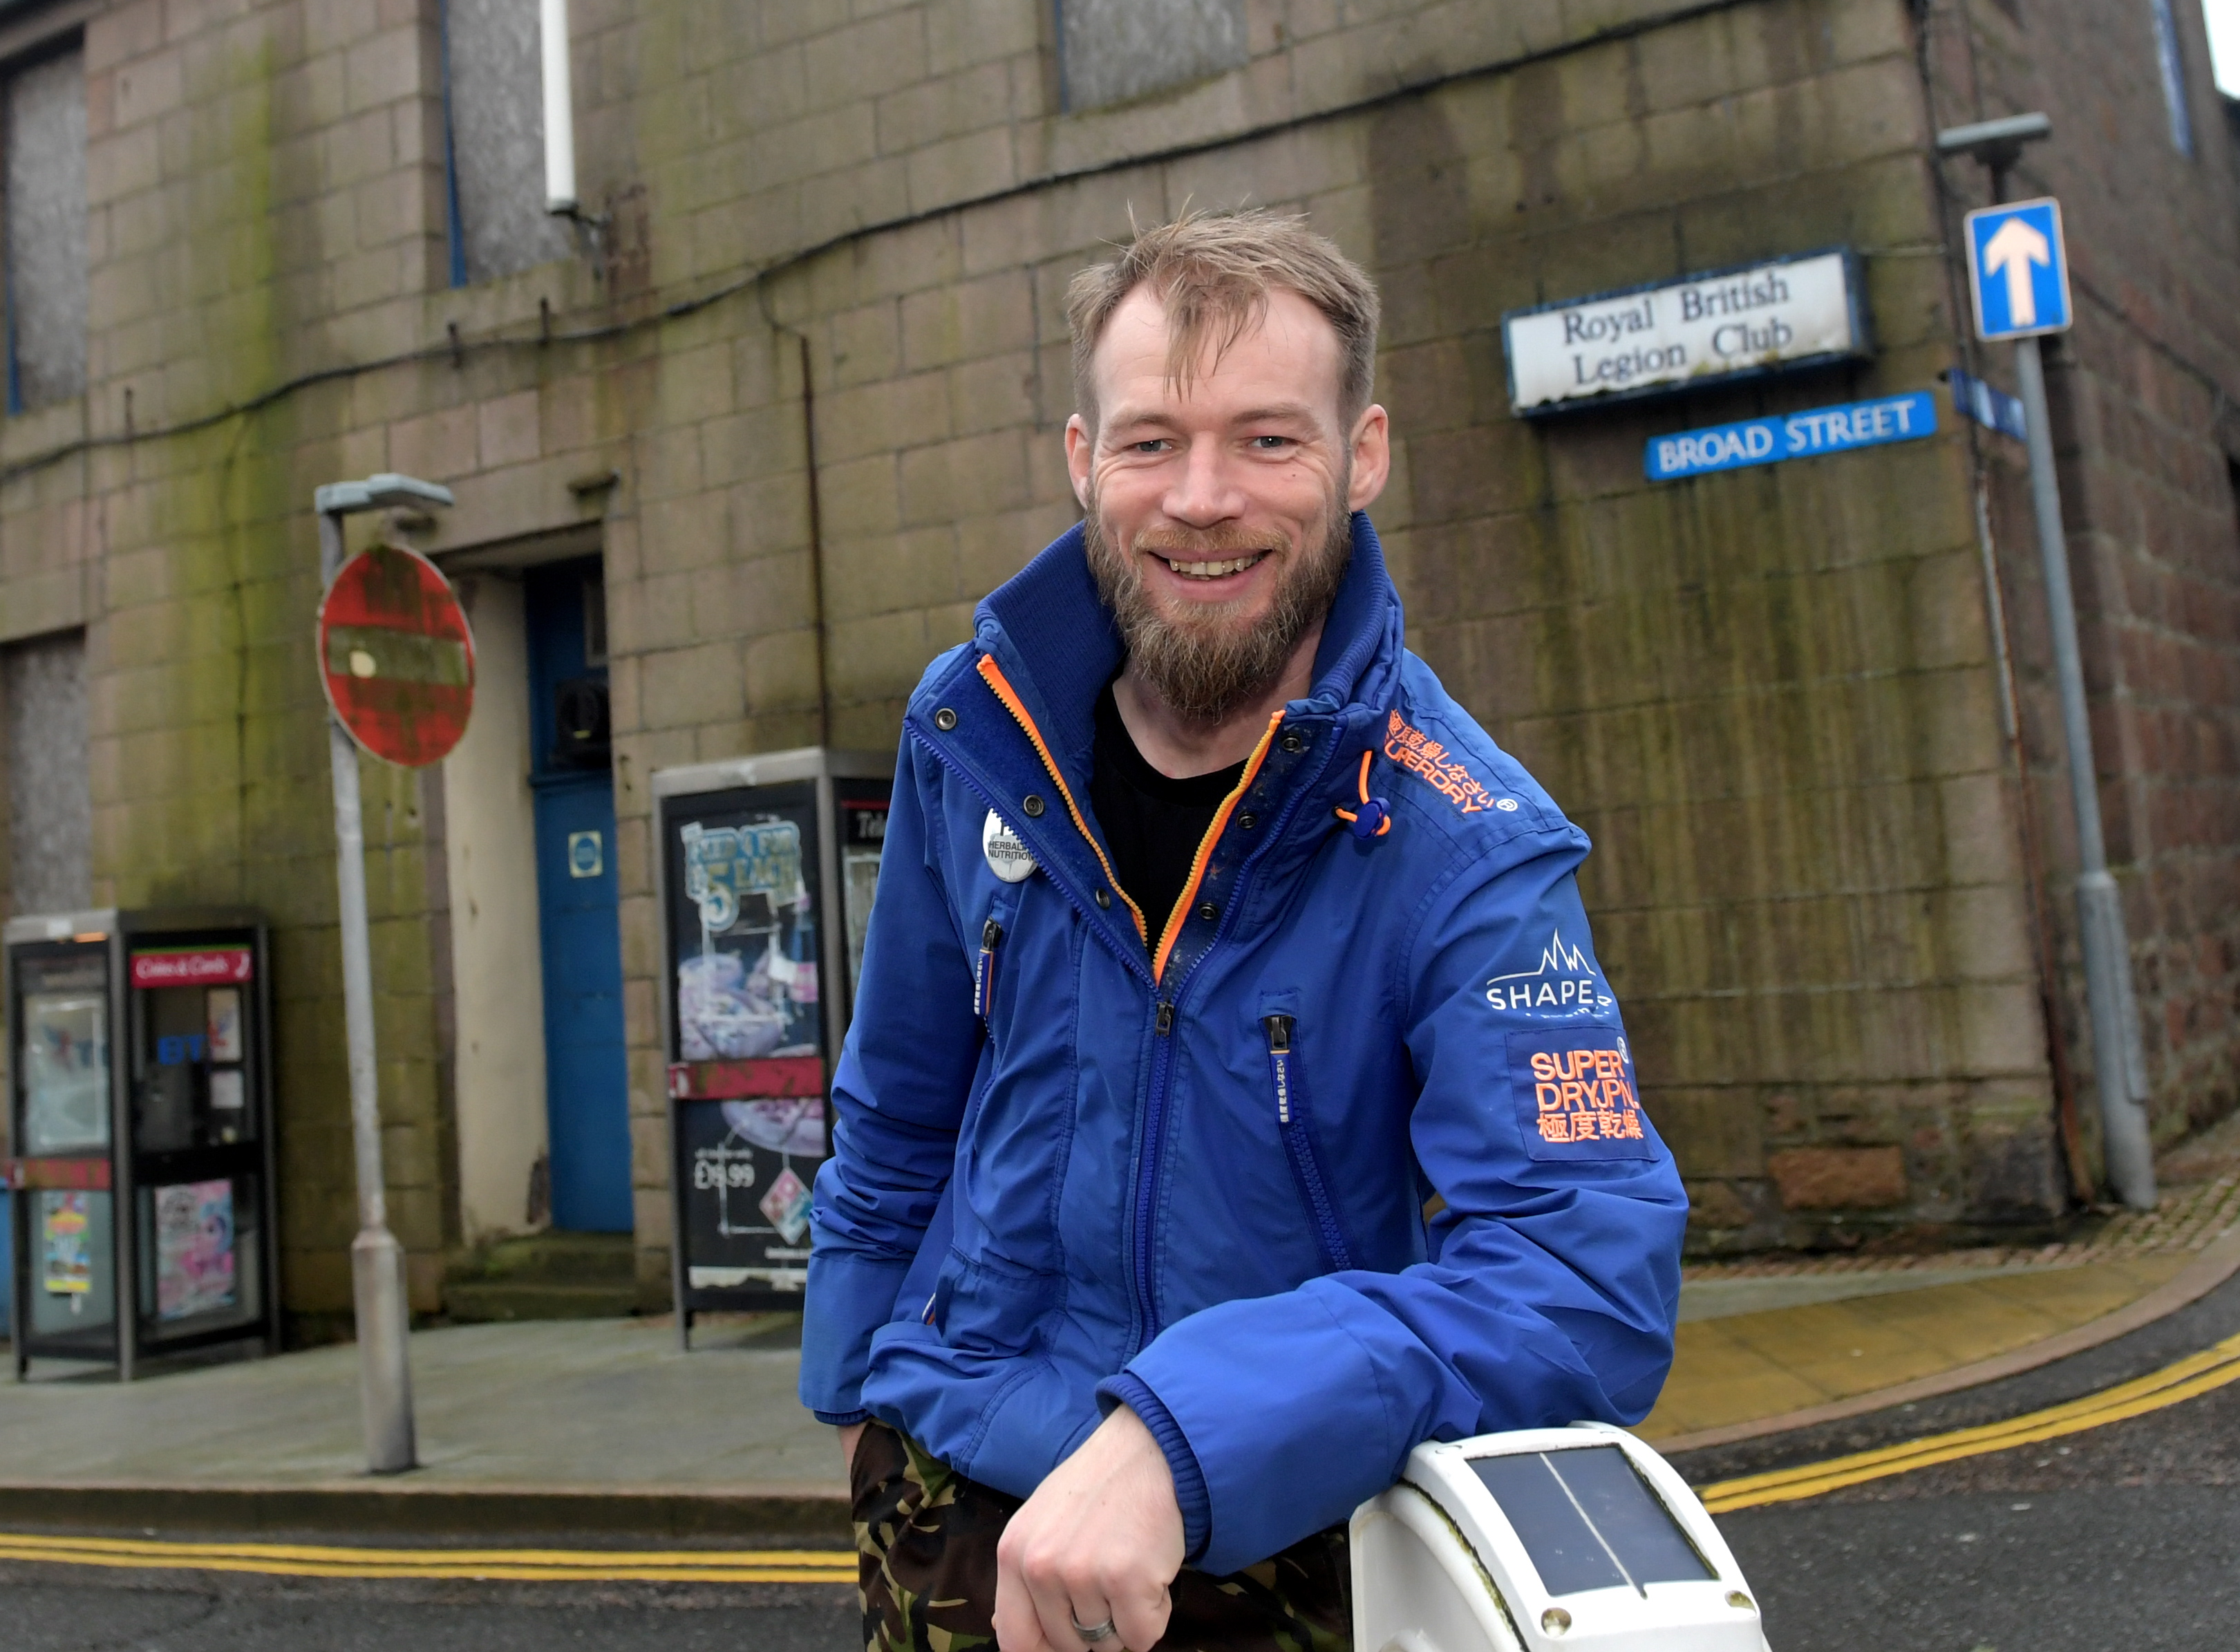 Creator of Shape Up Peterhead, PJ Coutts, is in the process of applying for a development grant from the Scottish Land Fund to transform the old Royal British Legion Building in Peterhead into a multipurpose community building. CR0016624 25/11/19  Picture by KATH FLANNERY